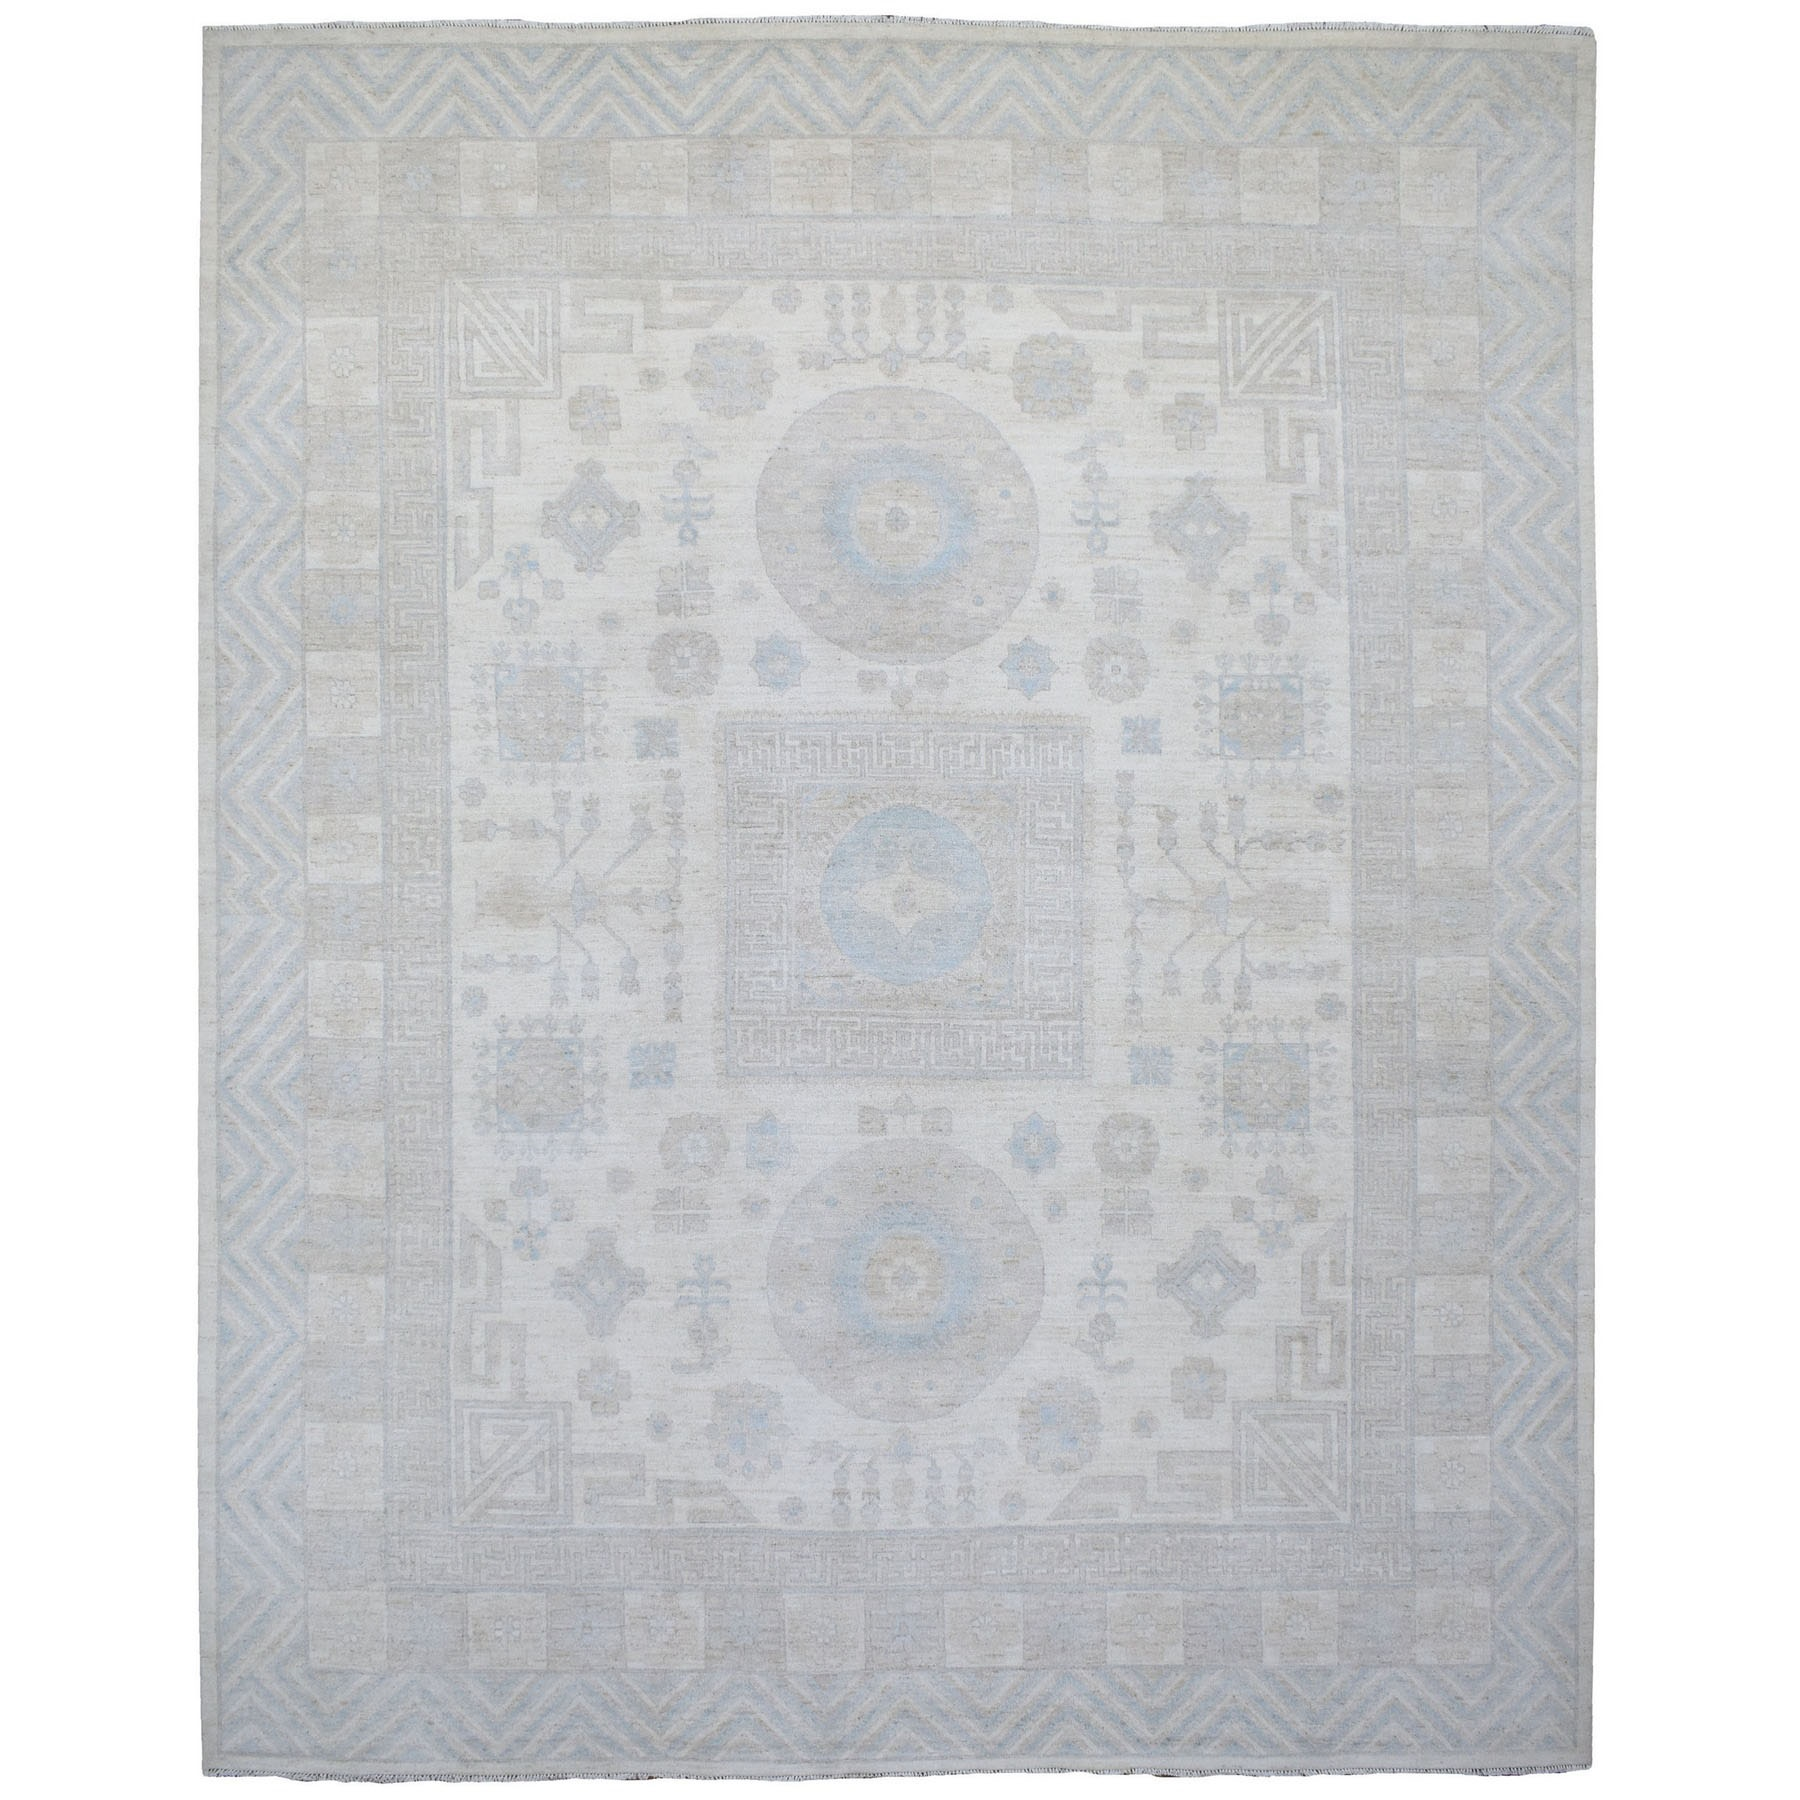 Oushak And Peshawar Rugs LUV609705